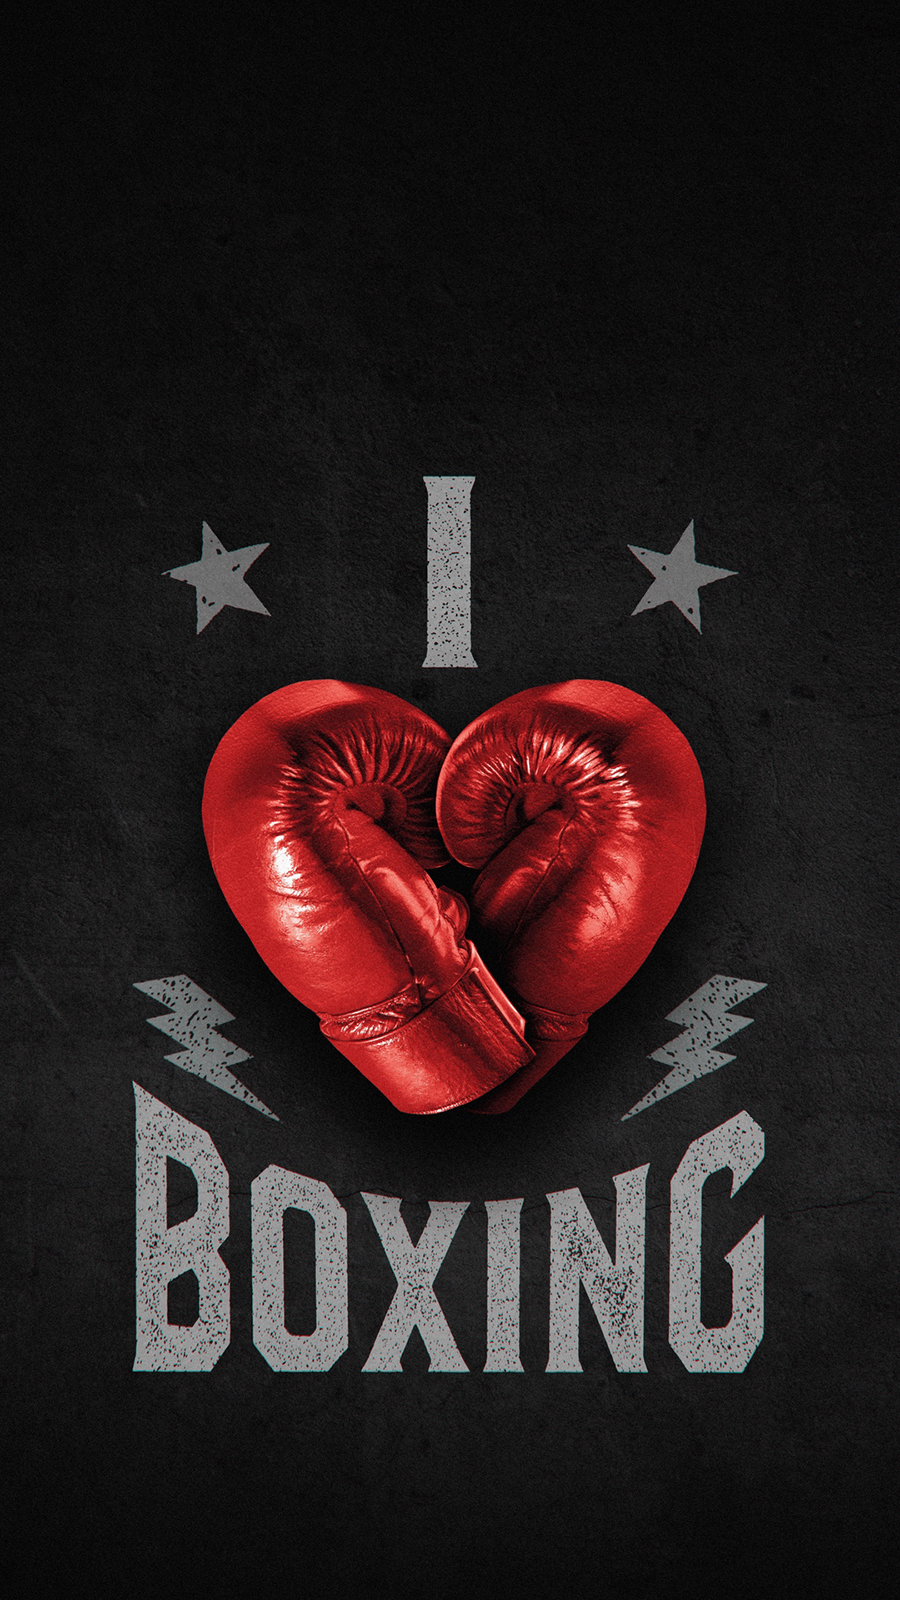 Boxing HD Wallpapers Free Download